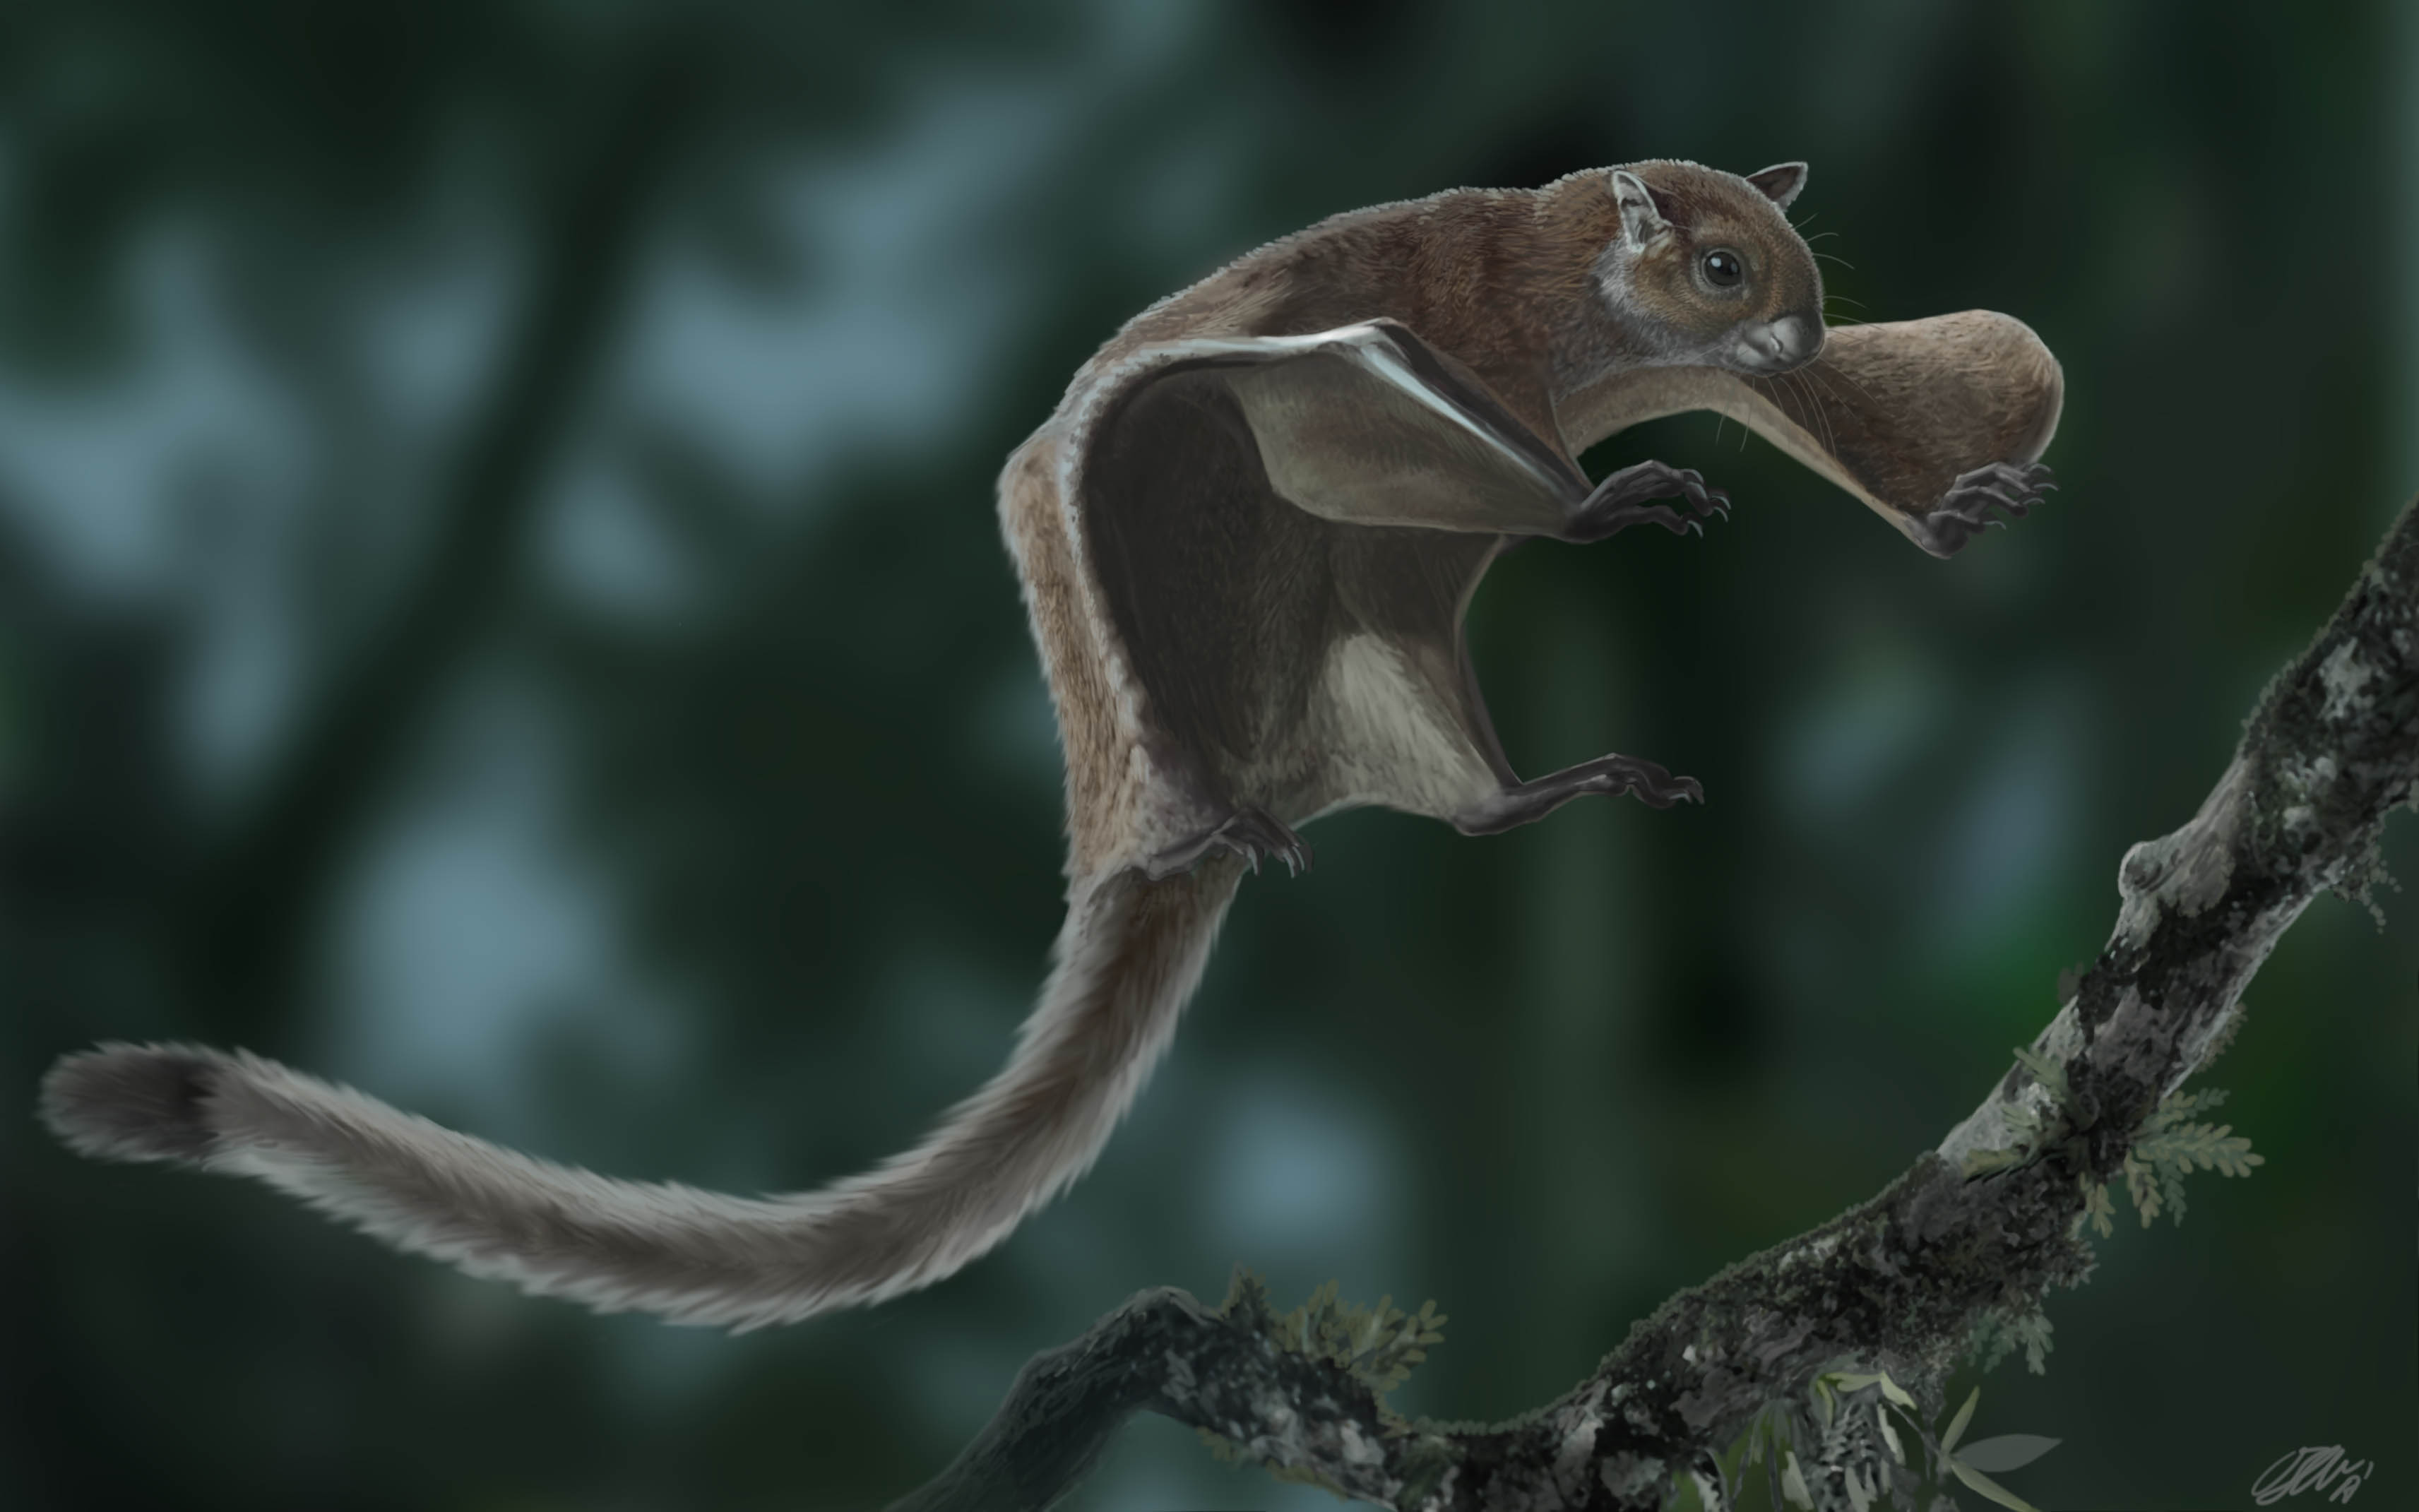 Reconstruction of the 11.6-million-year-old fossil flying squirrel Miopetaurista neogrivensis.